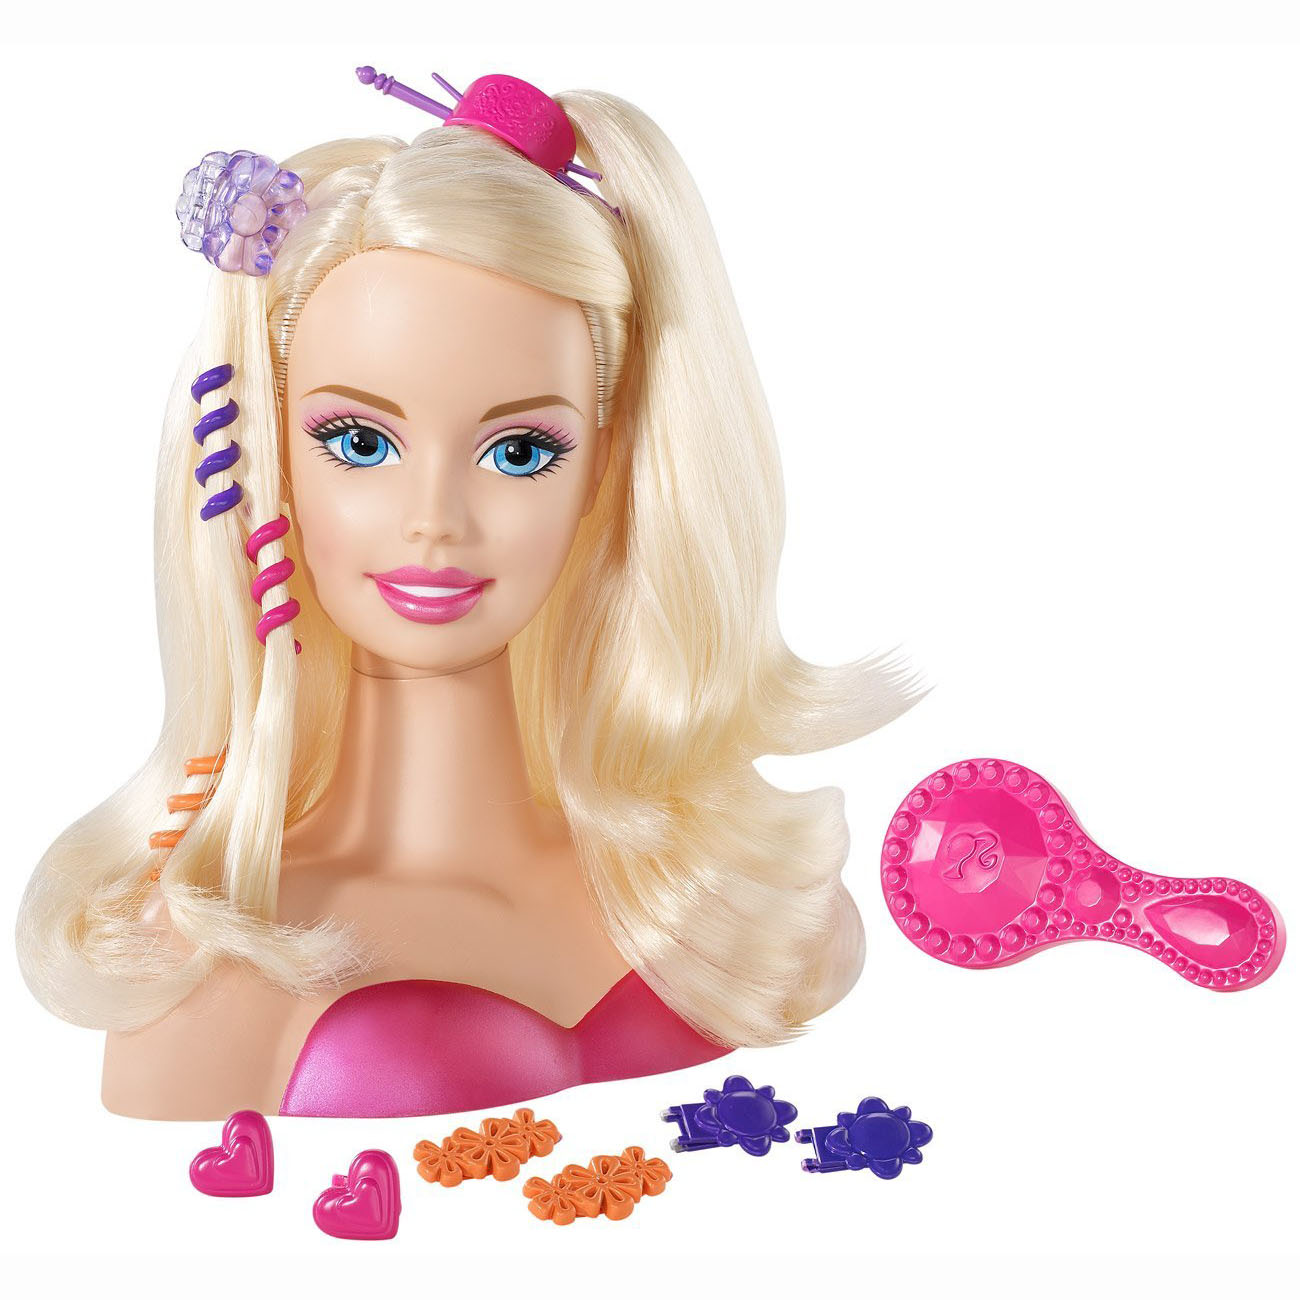 Toys For Hair : Barbie toys blonde styling head at toystop